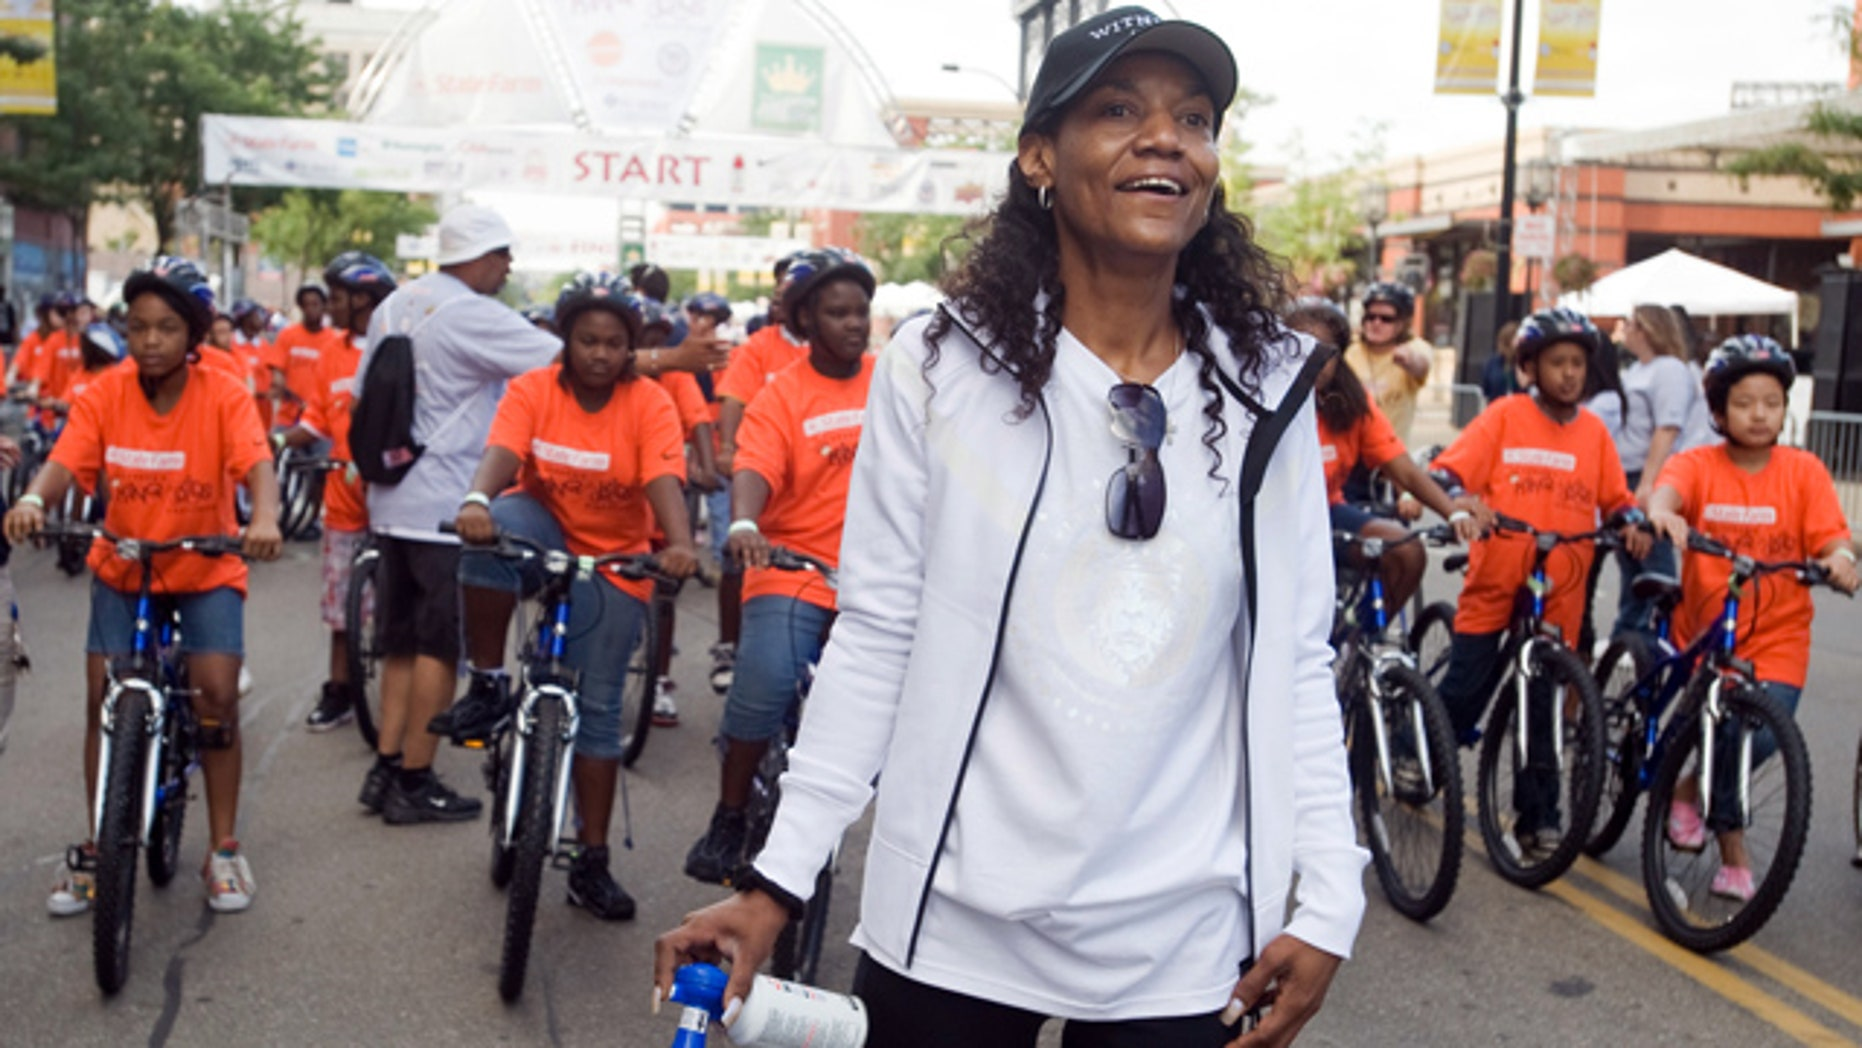 """This Aug. 22, 2009, file photo shows Gloria James, mother of basketball star LeBron James, watching a group of bike riders as she waits to start another group of riders at the """"King for Kids Bikeathon"""" in Akron, Ohio."""